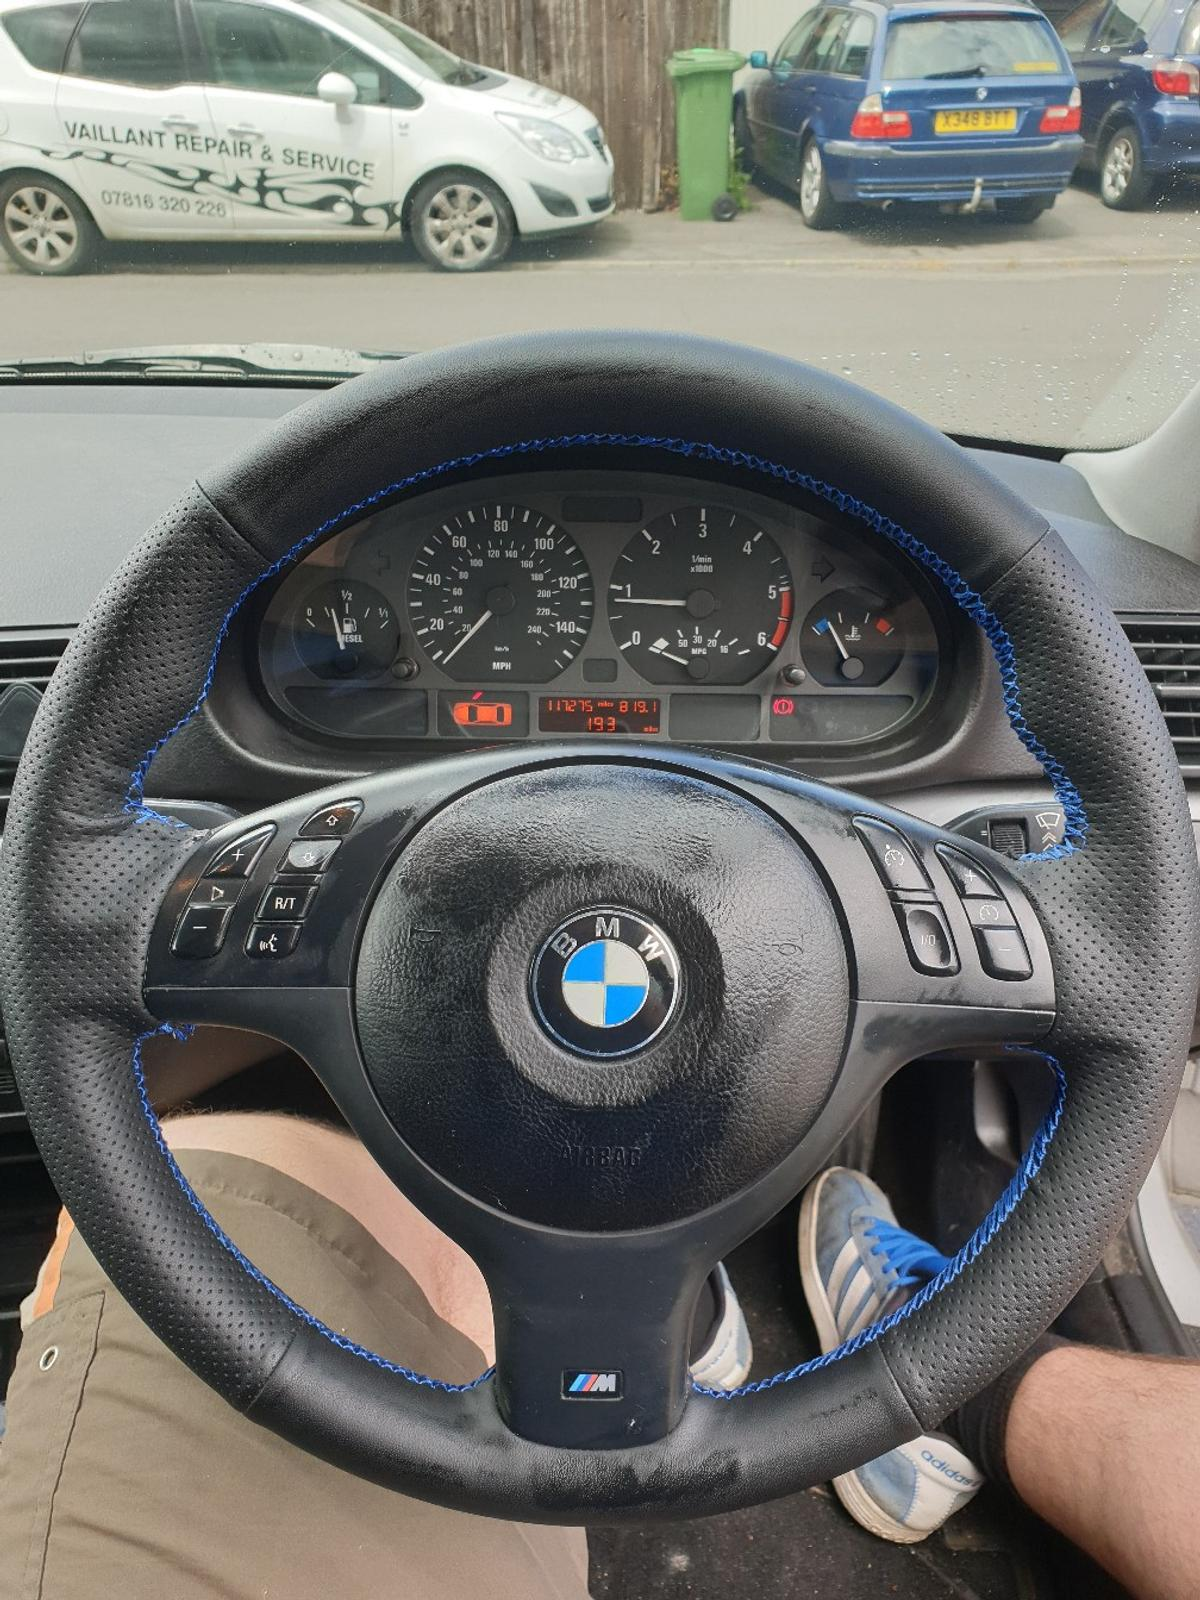 BMW 320d E46 in BS30 Warmley for £1,295 00 for sale - Shpock